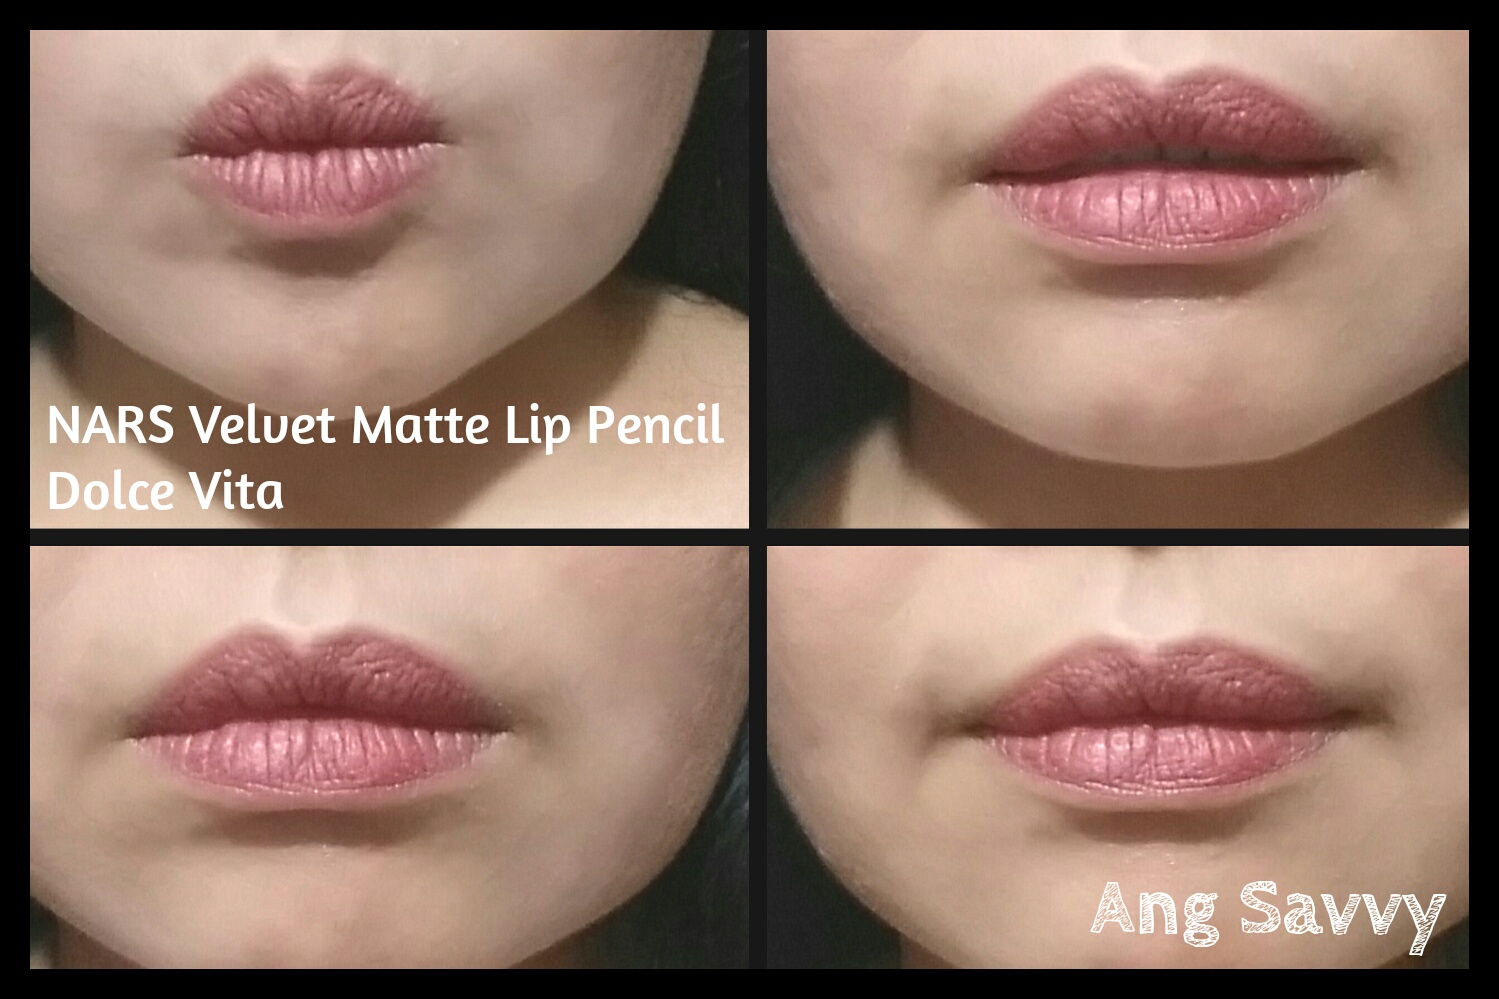 Swatches for NARS Velvet Matte Lip Pencil in Dolce Vita